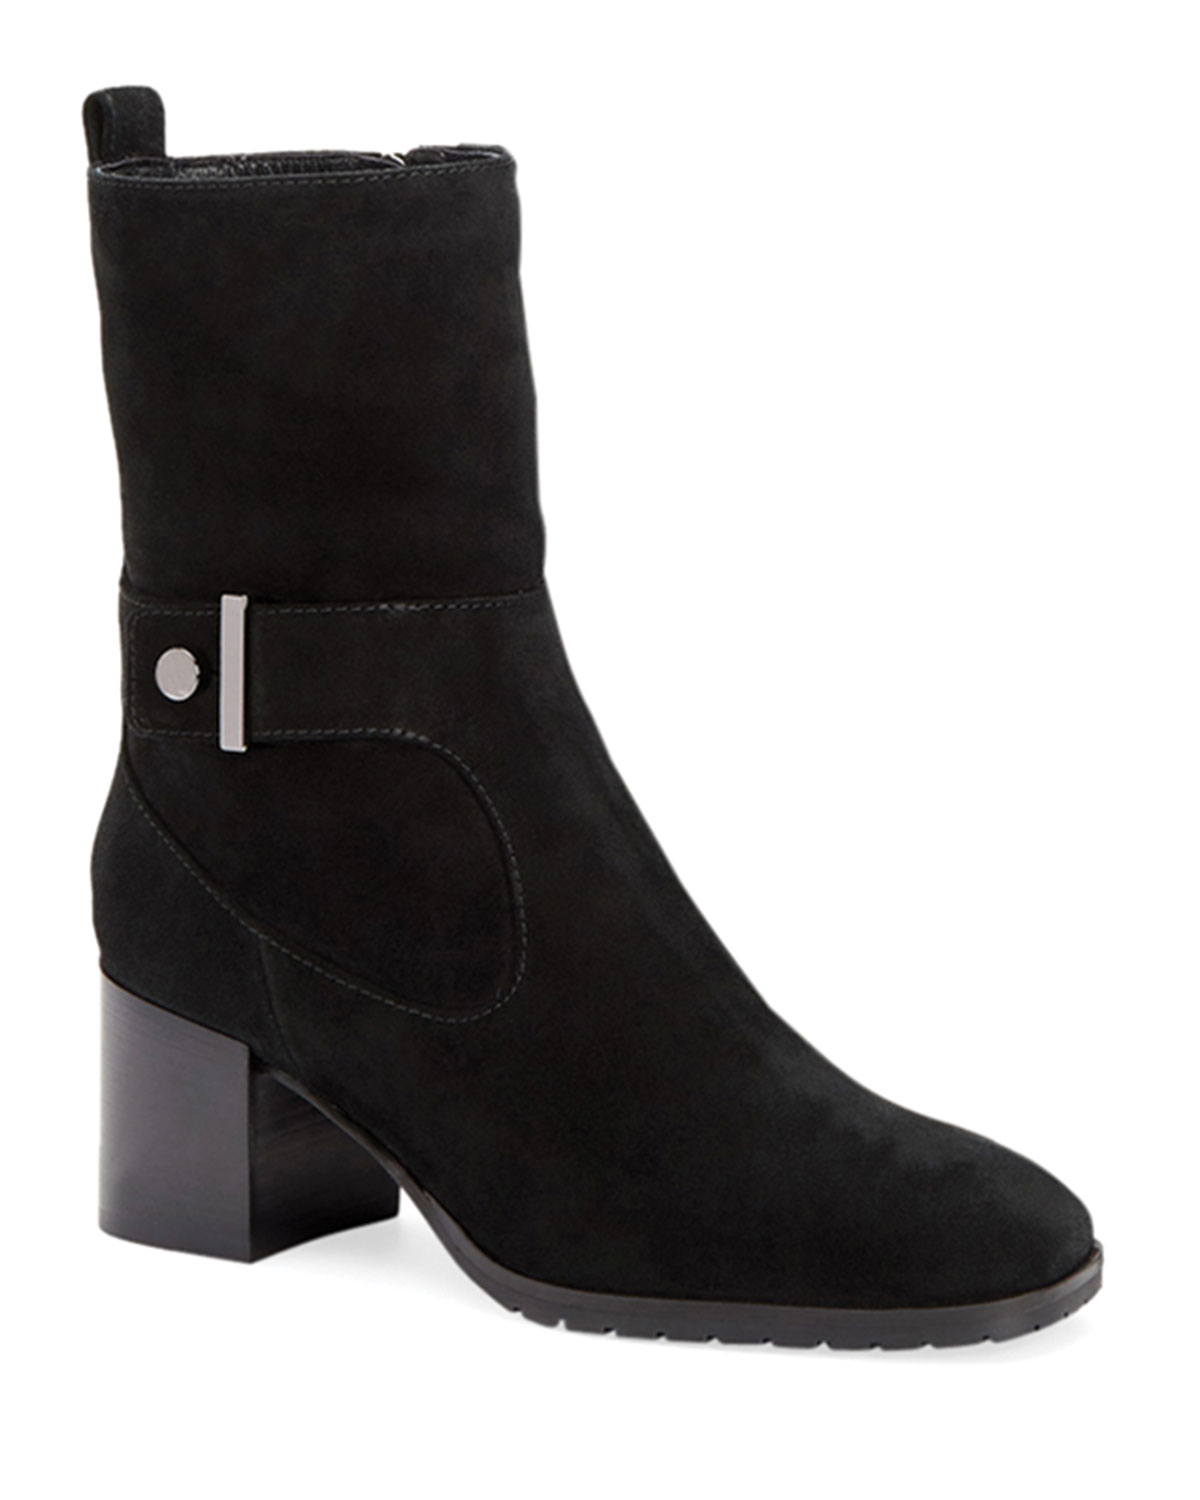 a43613e5dede Aquatalia Collette Suede Block-Heel Booties with Strap Detail | Neiman  Marcus